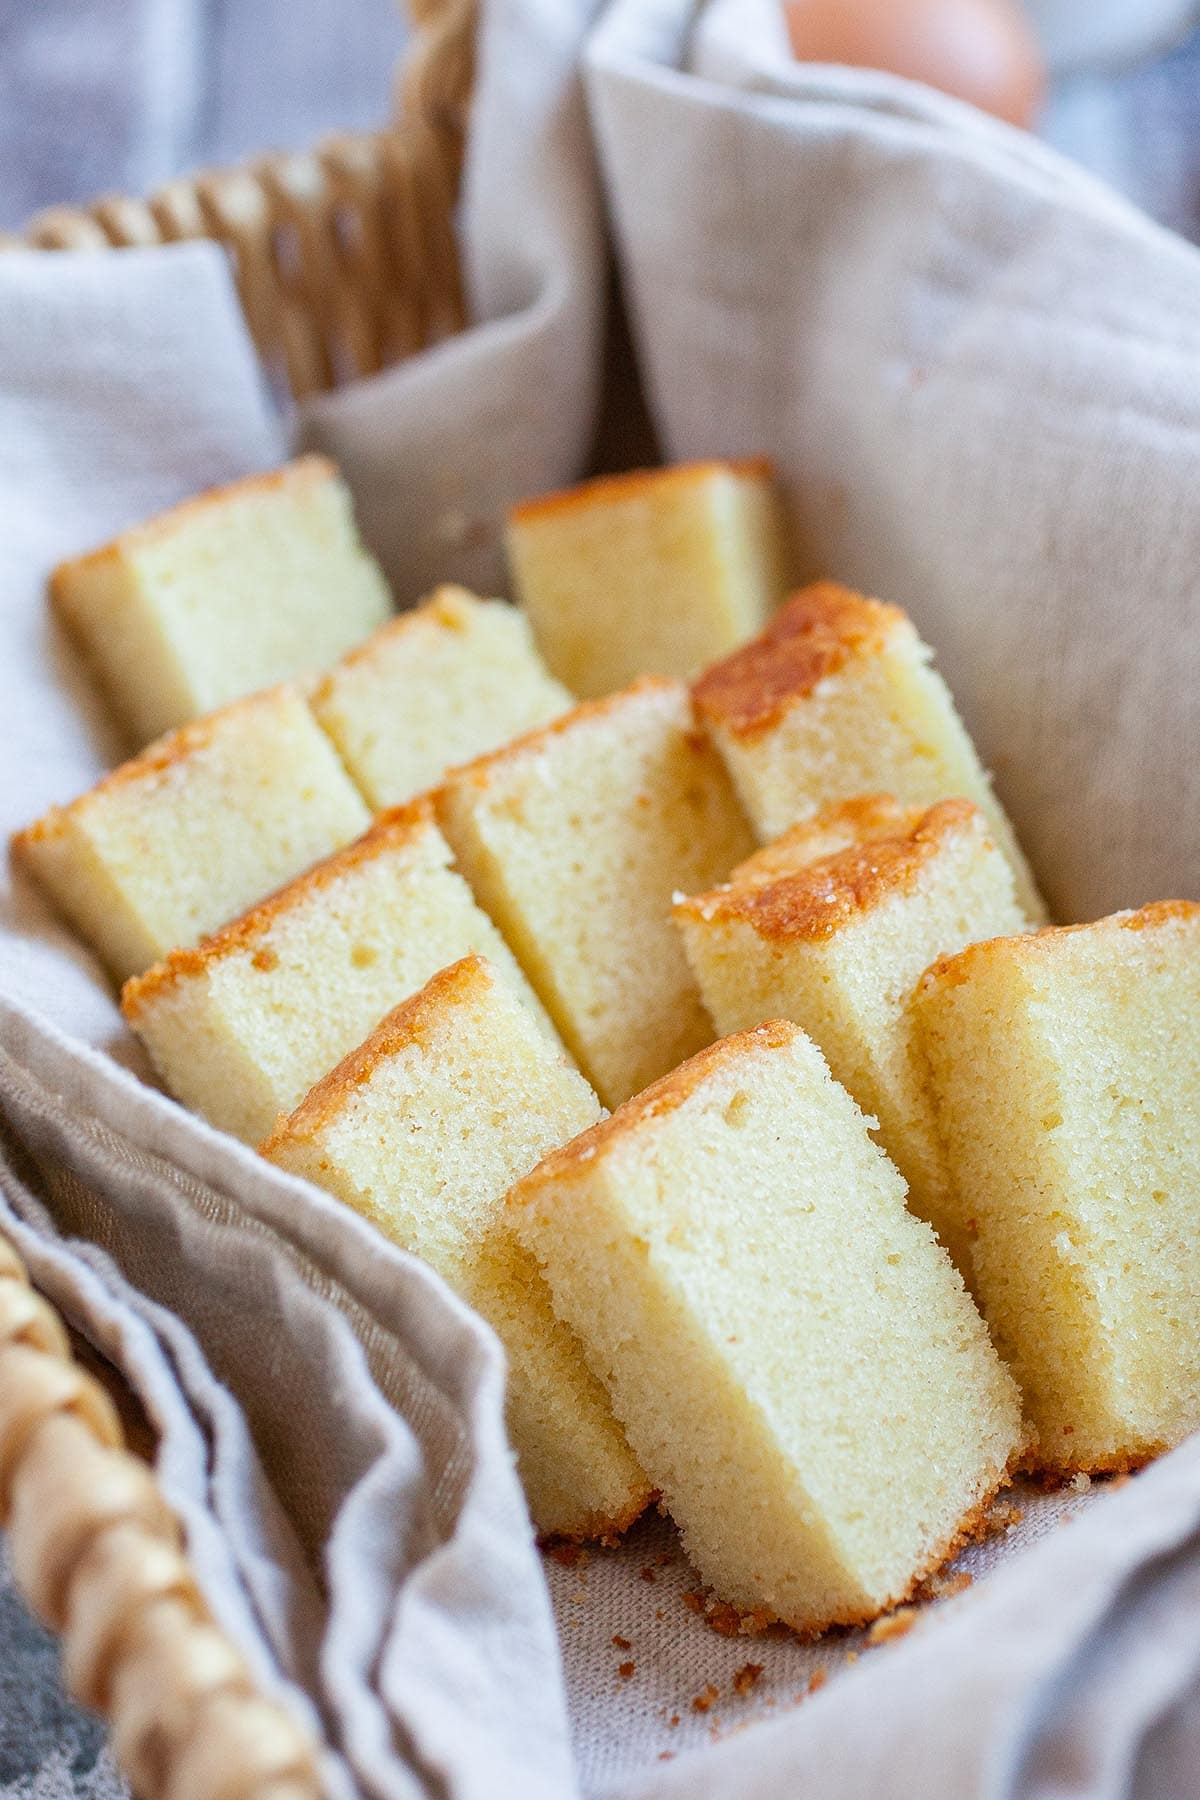 The best butter cake recipe from scratch, made with butter, eggs, flour, milk and sugar.